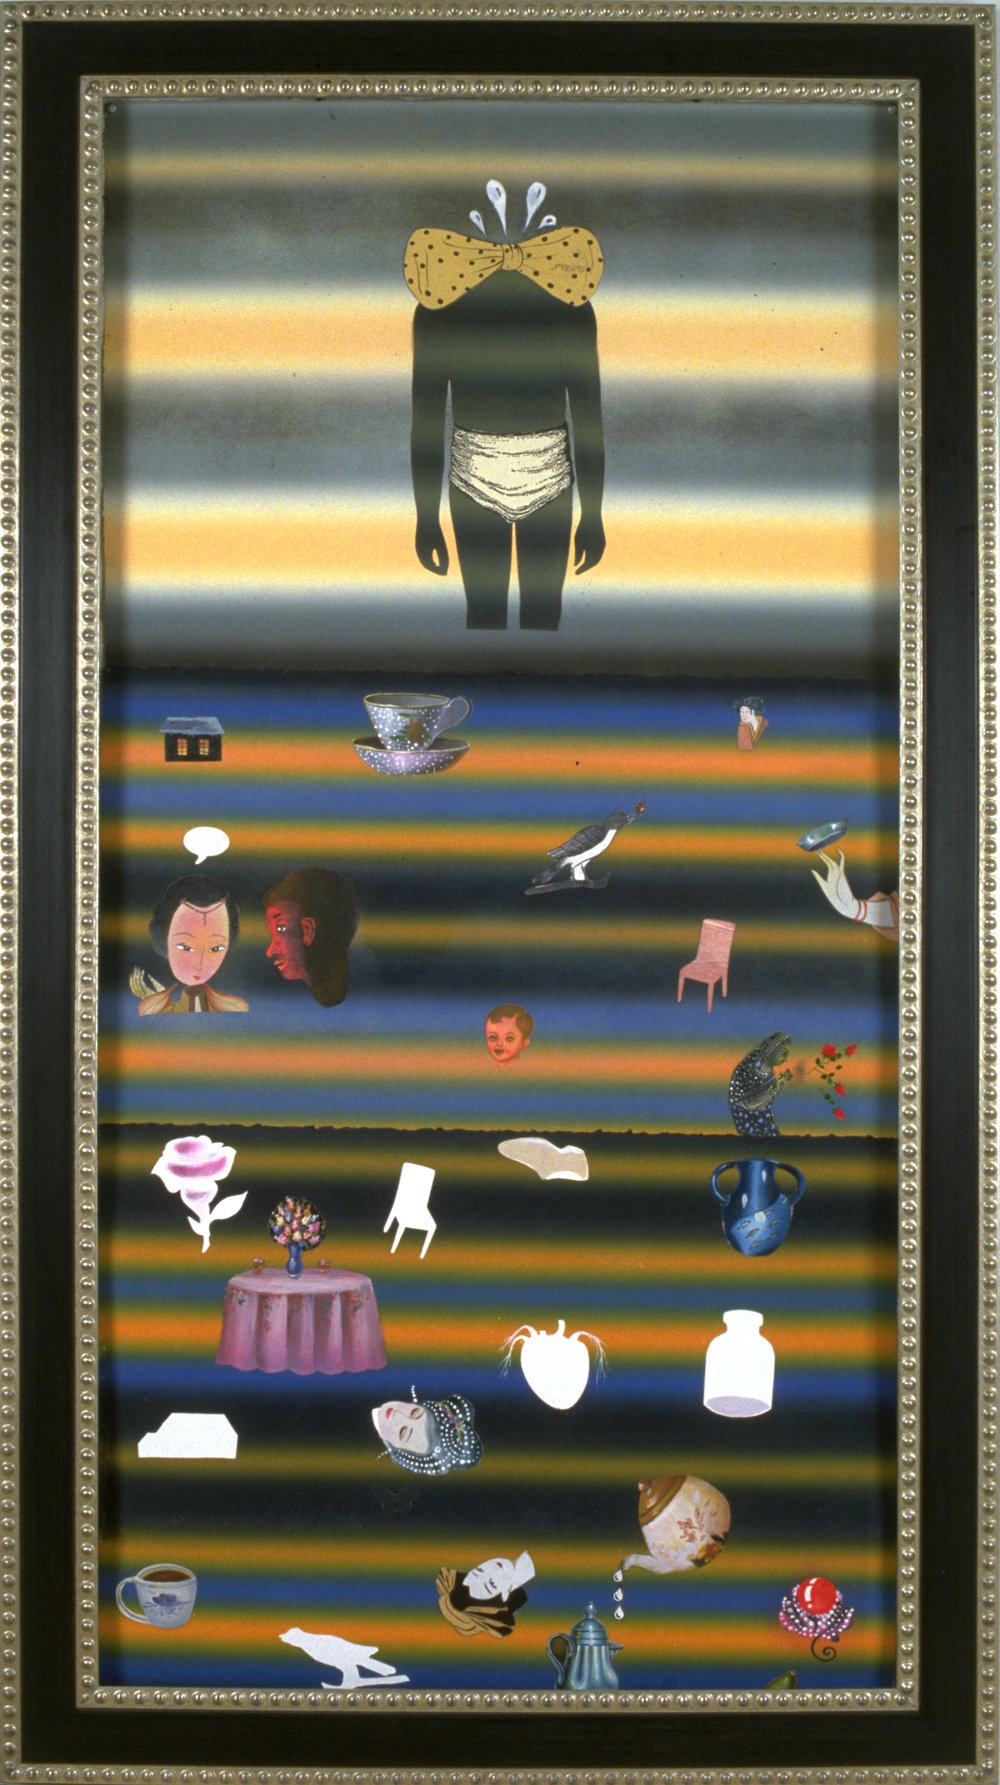 "Muteness Caused by Skepticism, 60"" × 38"", mixed media on paper, 2001"